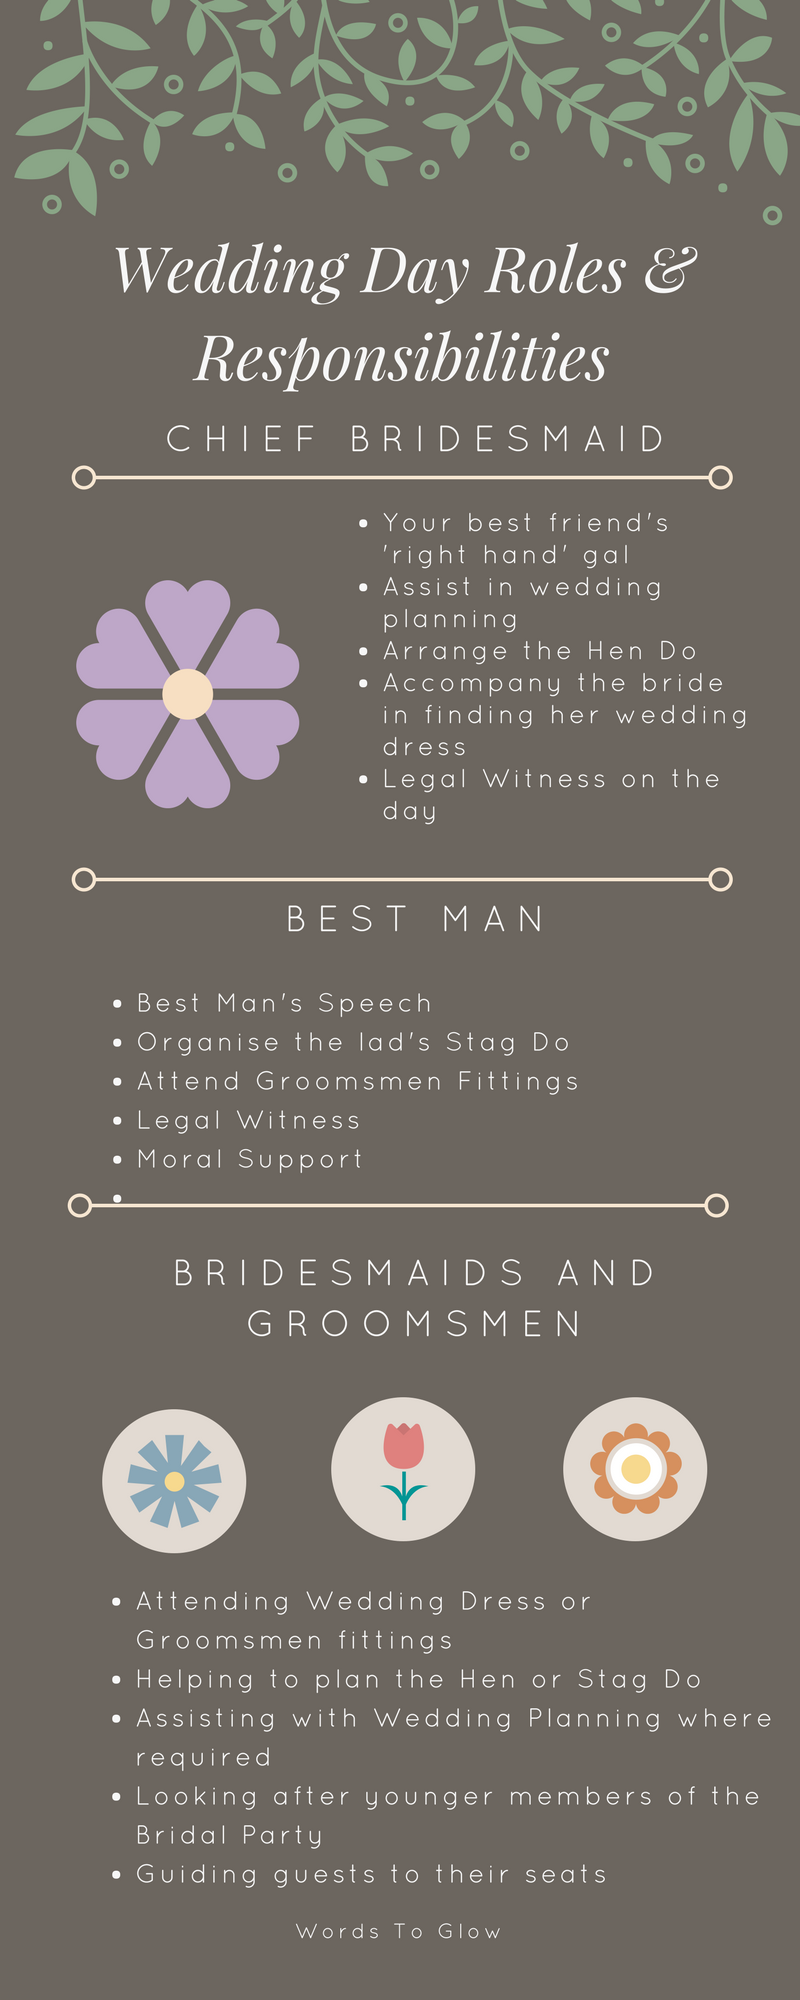 Wedding Day Roles and Responsibilities – A Quick Guide